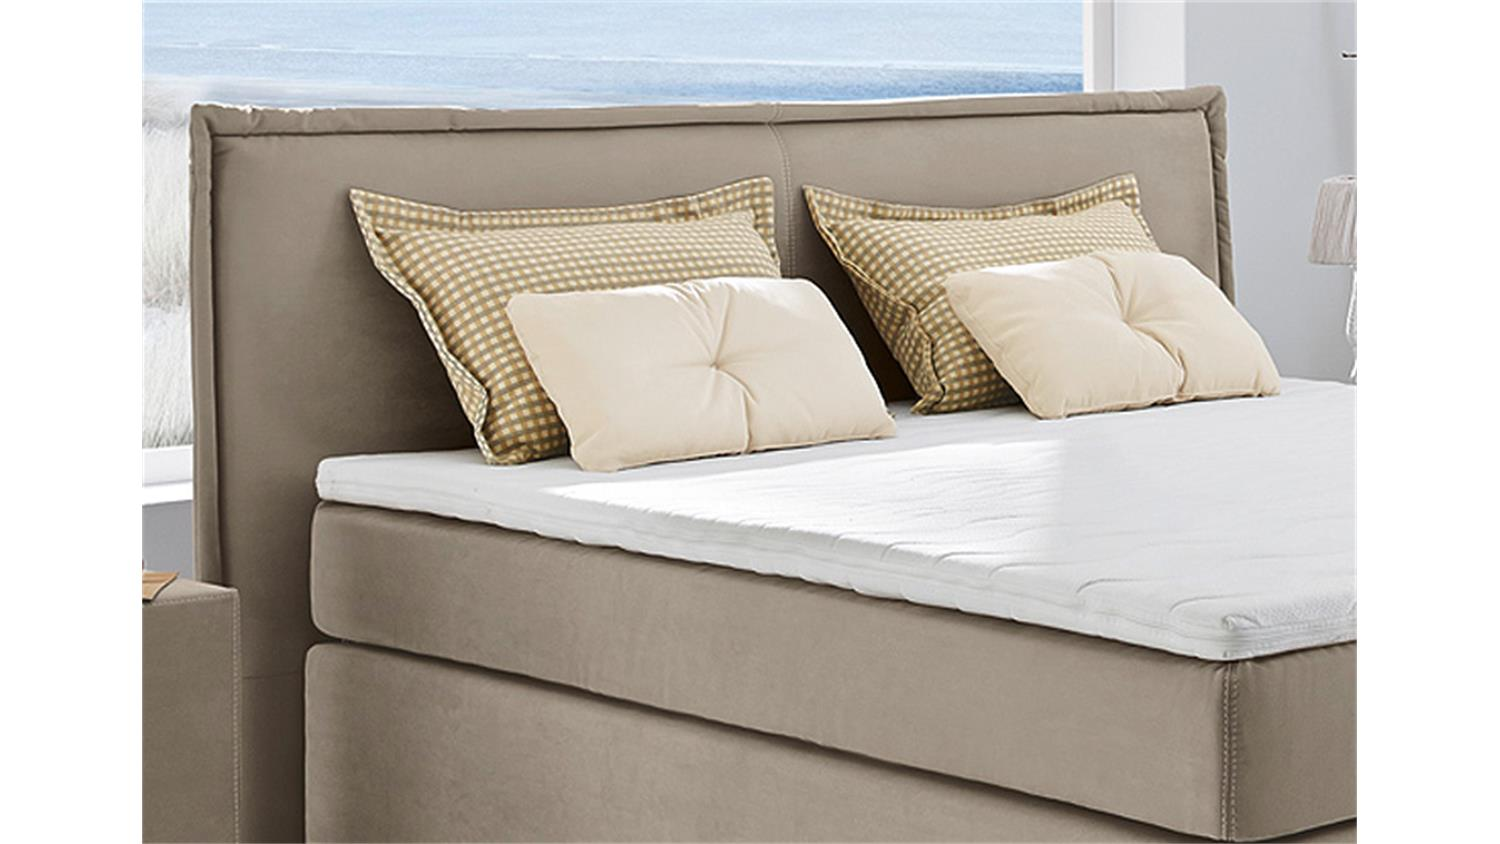 boxspringbett ascoli bett in beige mit tandembezug 180x200. Black Bedroom Furniture Sets. Home Design Ideas